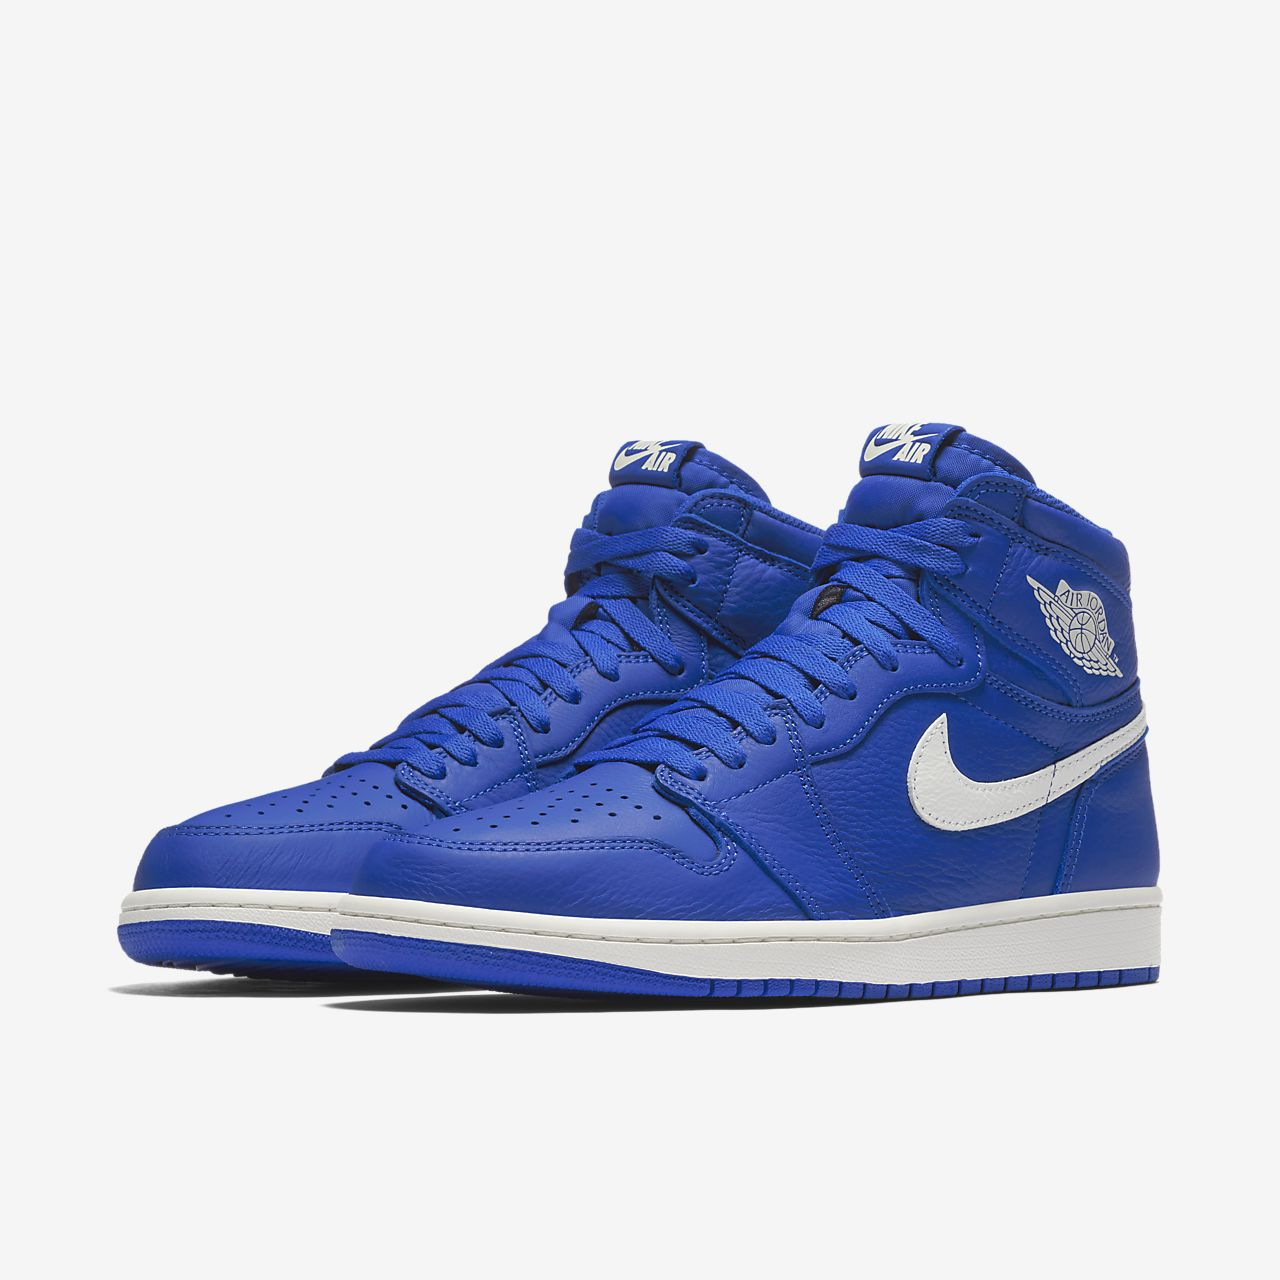 a76fcf40c5f031 Air Jordan 1 Retro High OG Shoe. Nike.com LU